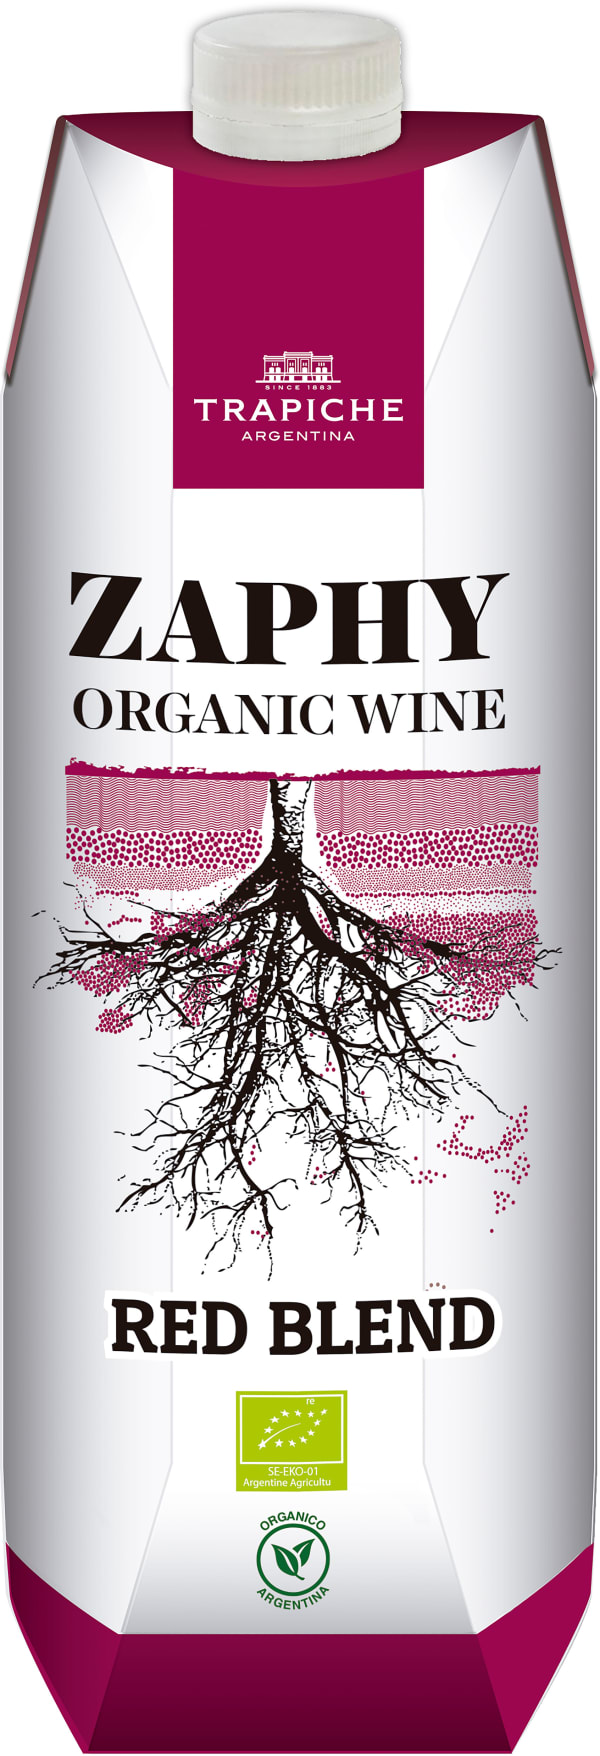 Trapiche Zaphy Organic red blend 2018 carton package